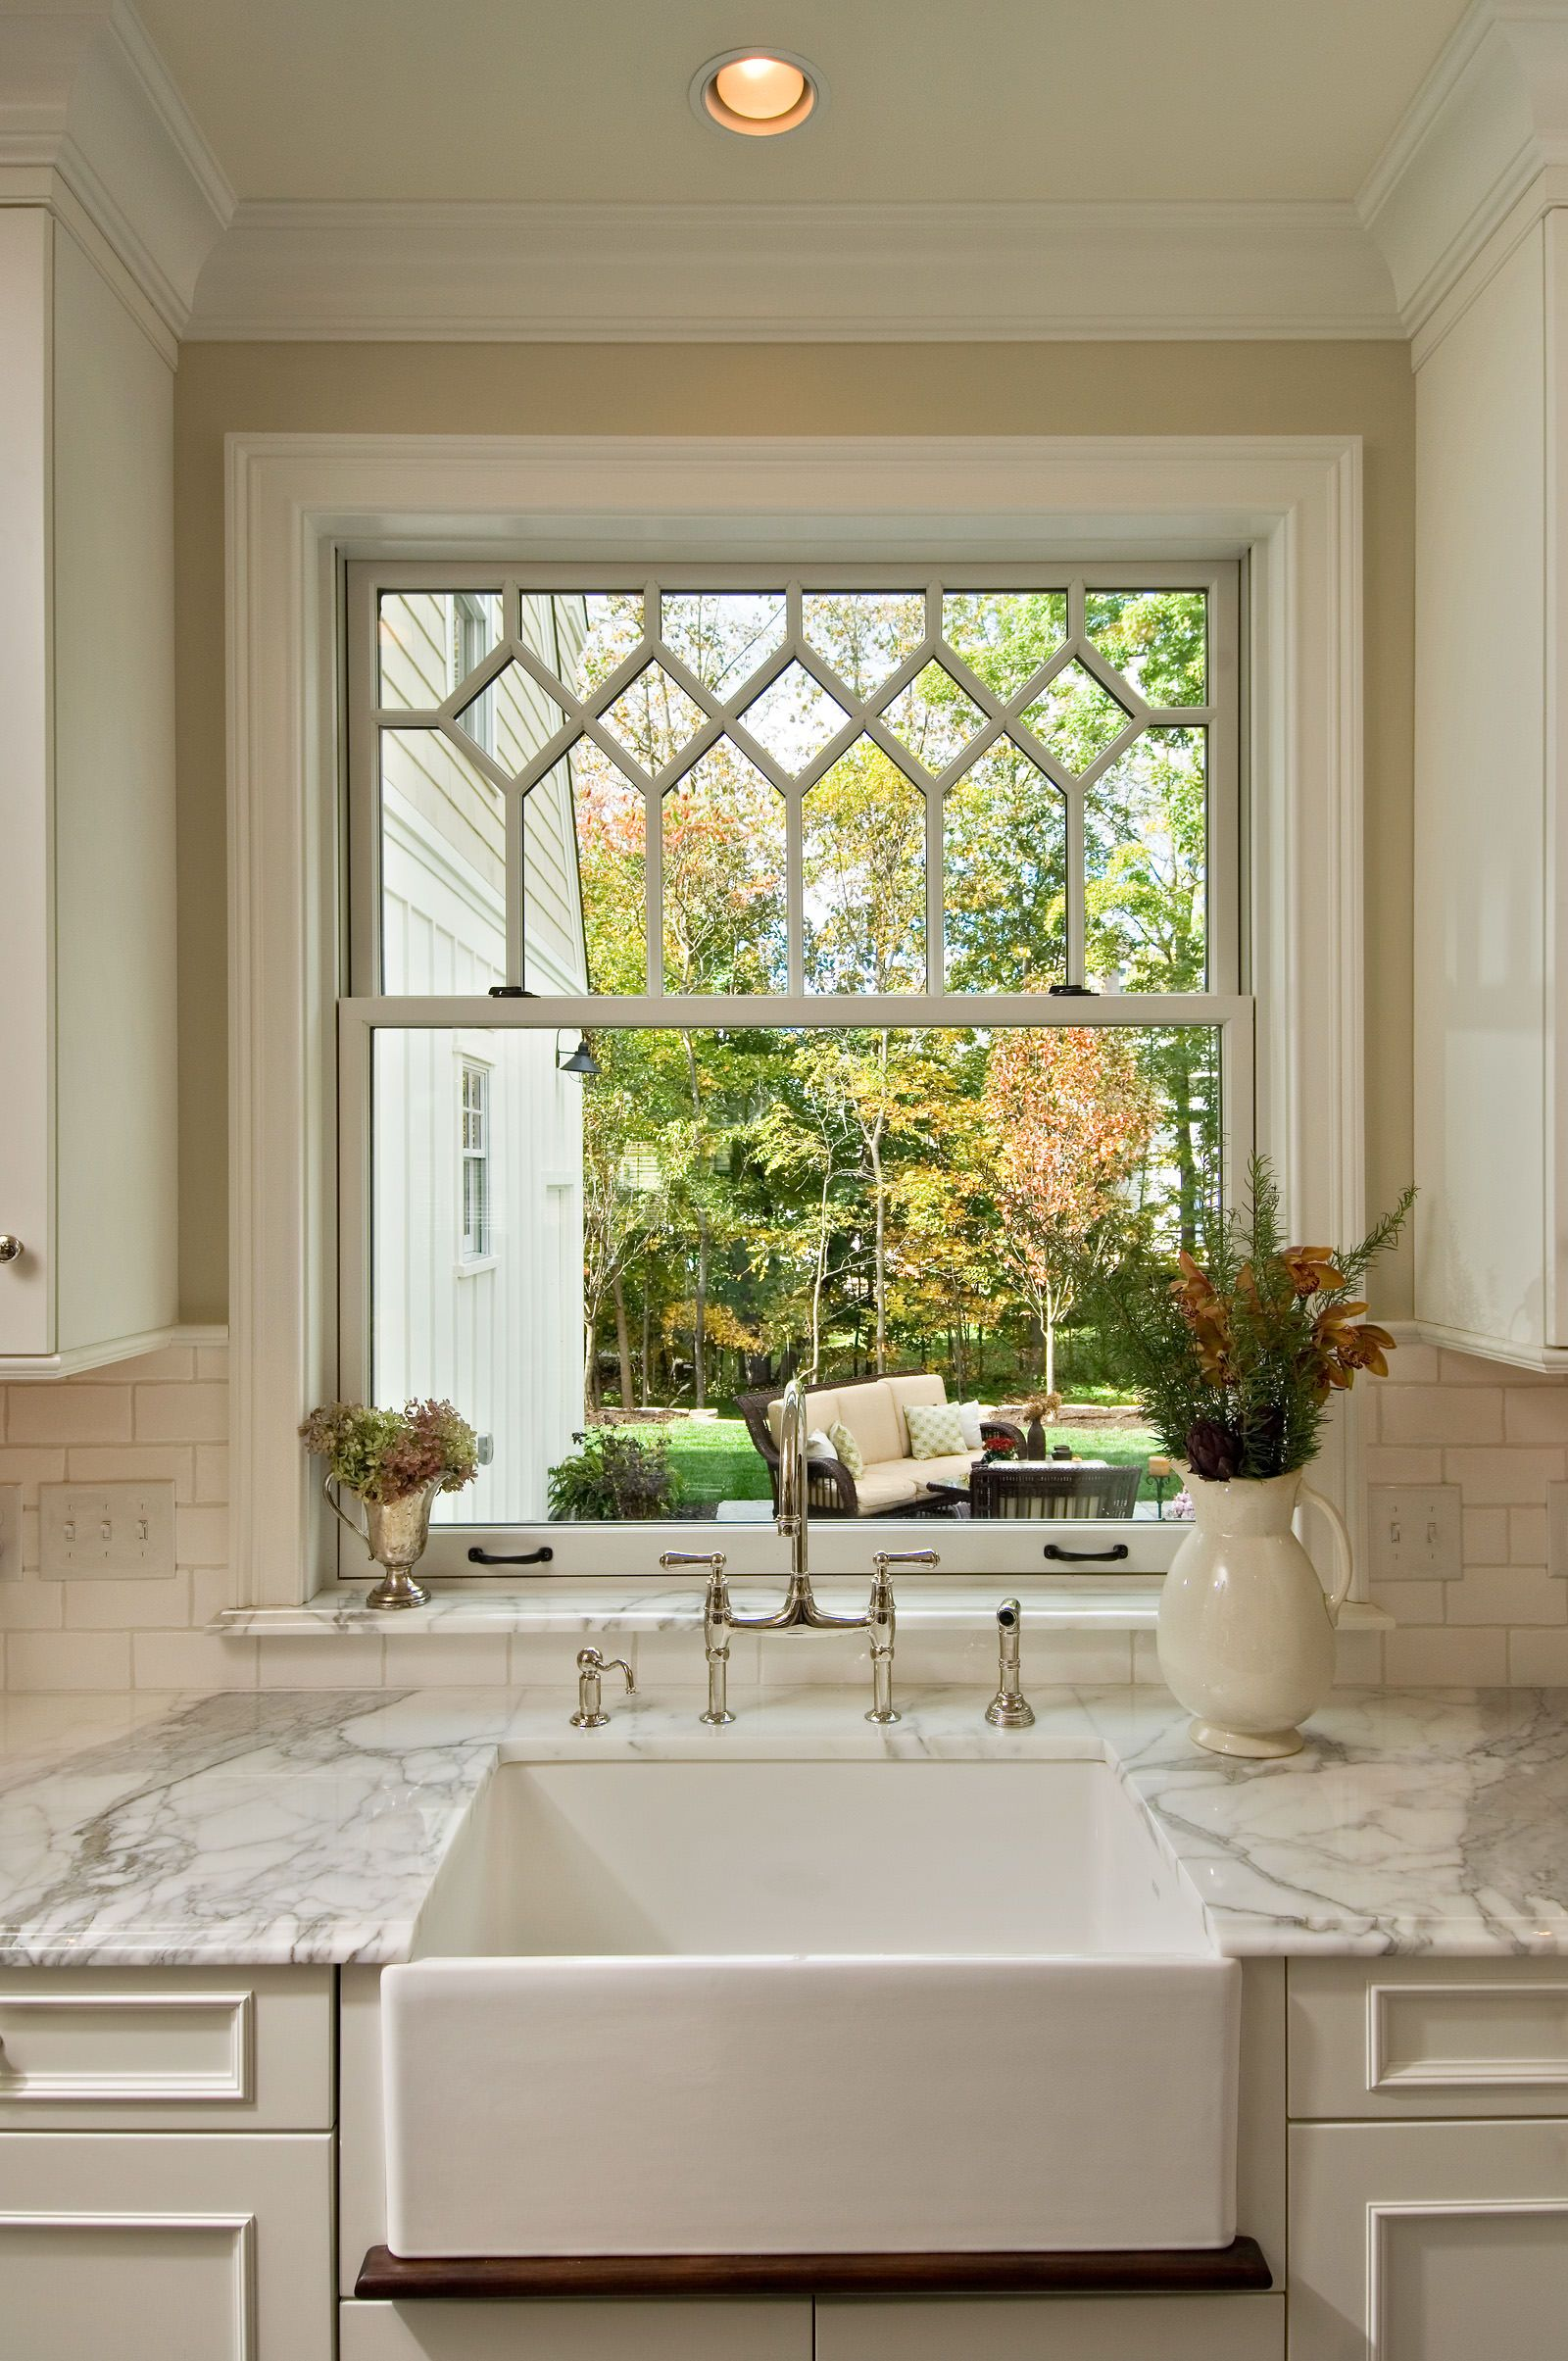 Farm sink with detailed window for character | My farm house and ...